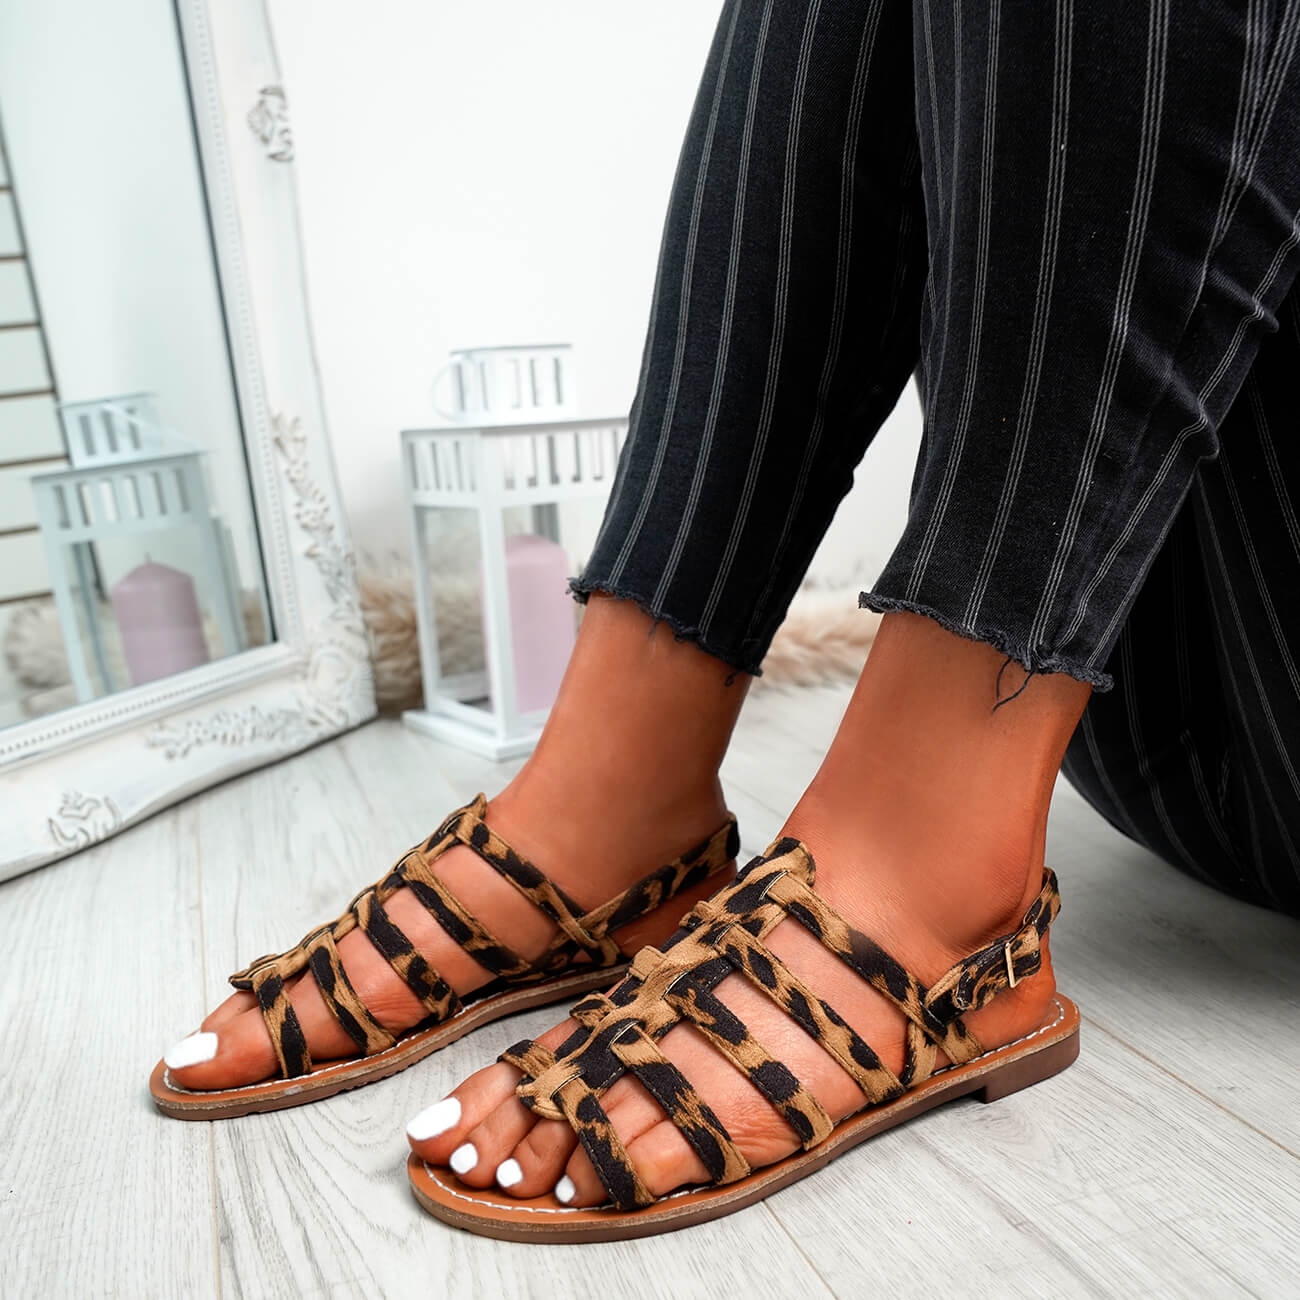 WOMENS-LADIES-BUCKLE-STRAP-FLAT-SUMMER-SANDALS-CASUAL-HOLIDAY-COMFY-SHOES-SIZE thumbnail 24